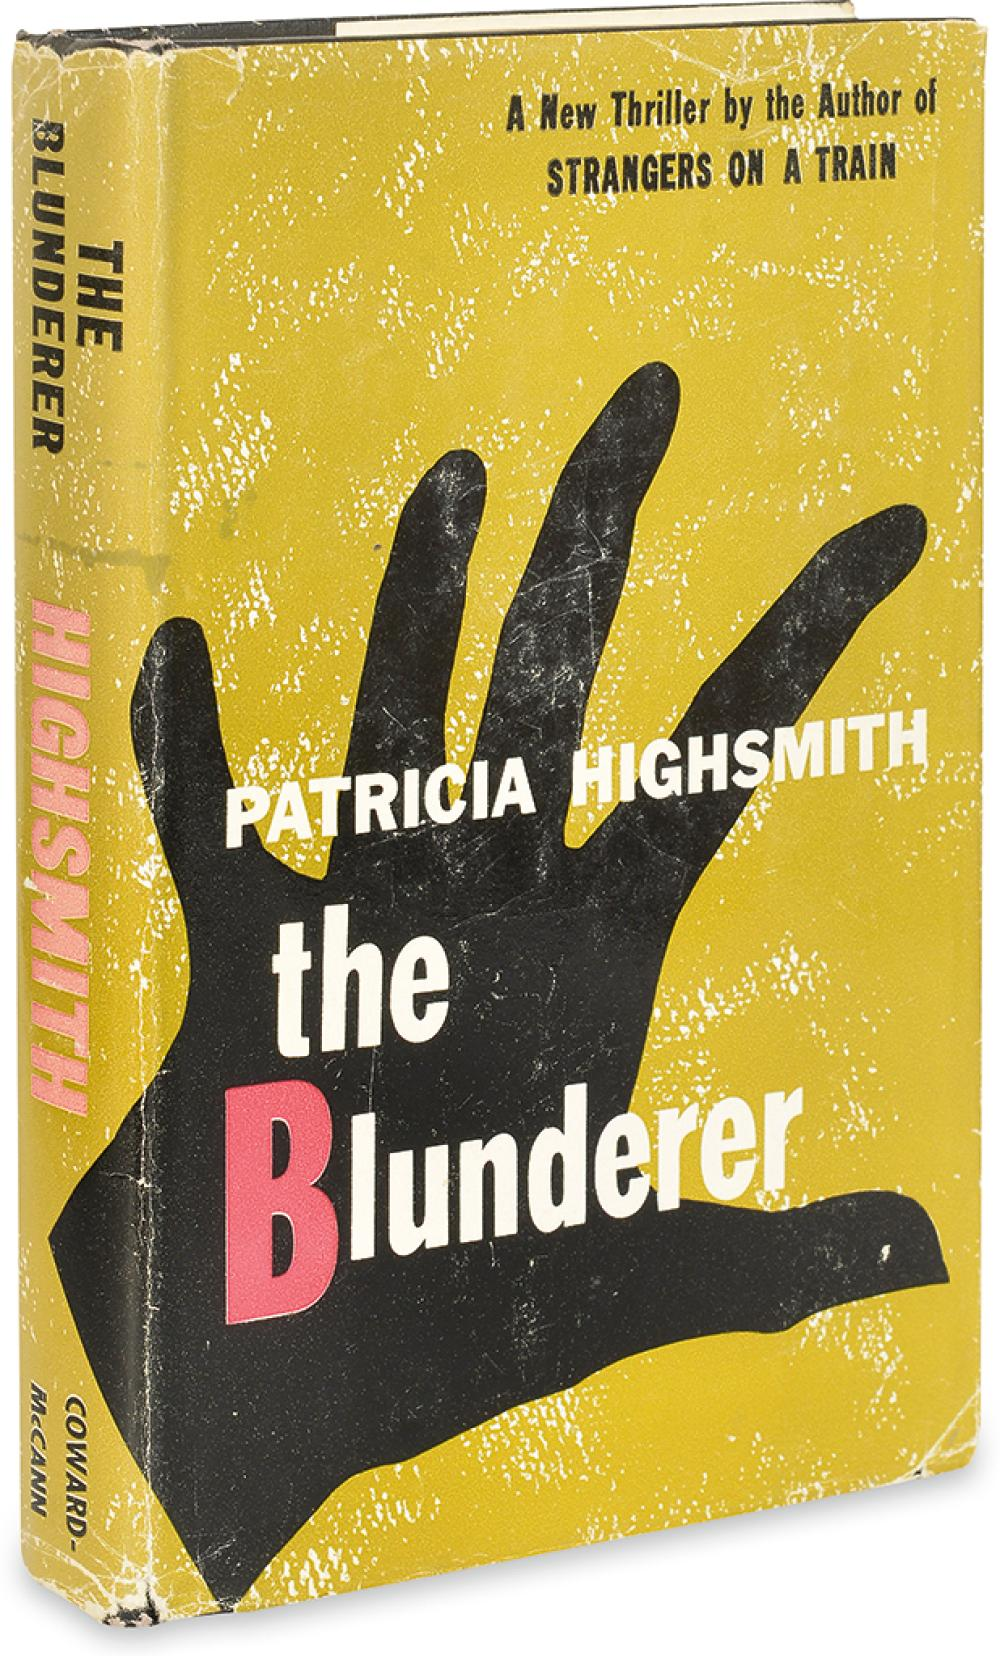 HIGHSMITH, PATRICIA. Blunderer.